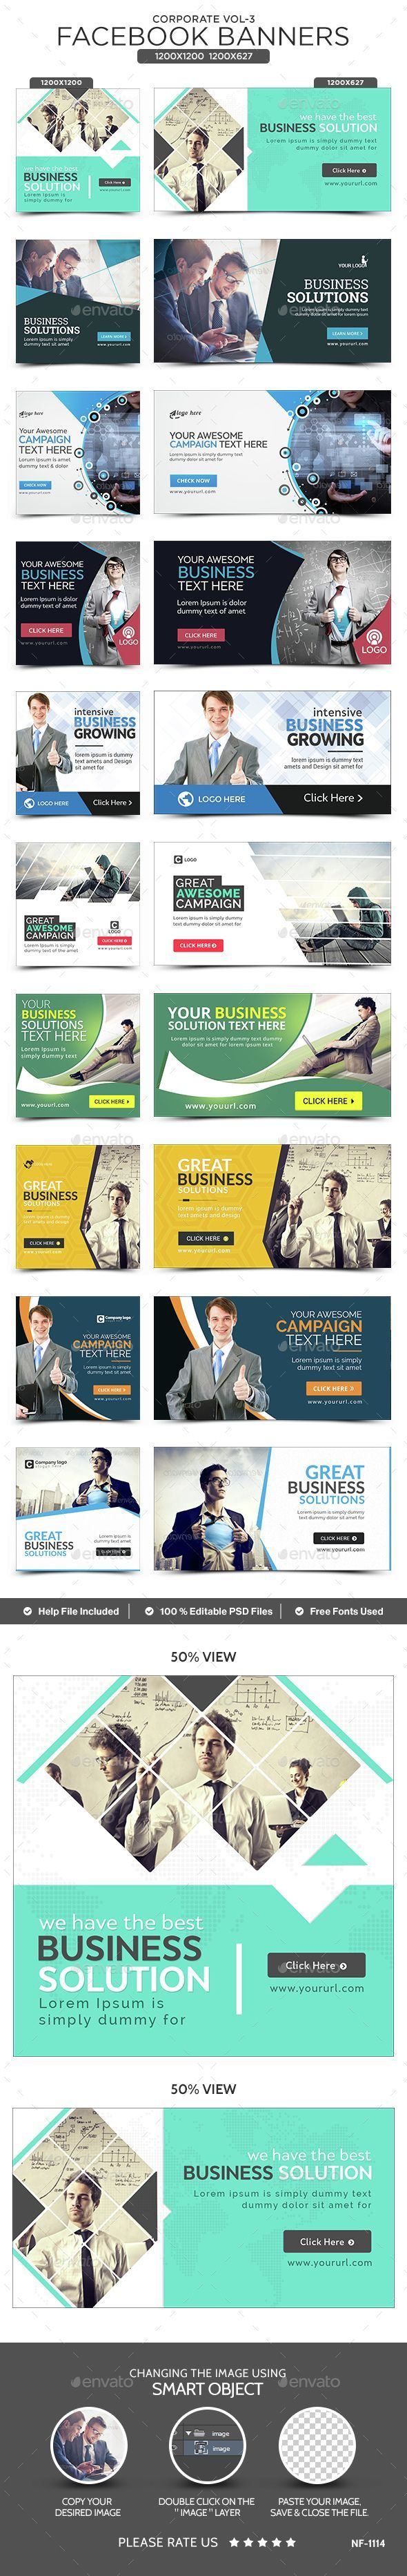 Corporate facebook banners 10 designs 20 banners banners corporate facebook banners 10 designs 20 banners flashek Choice Image